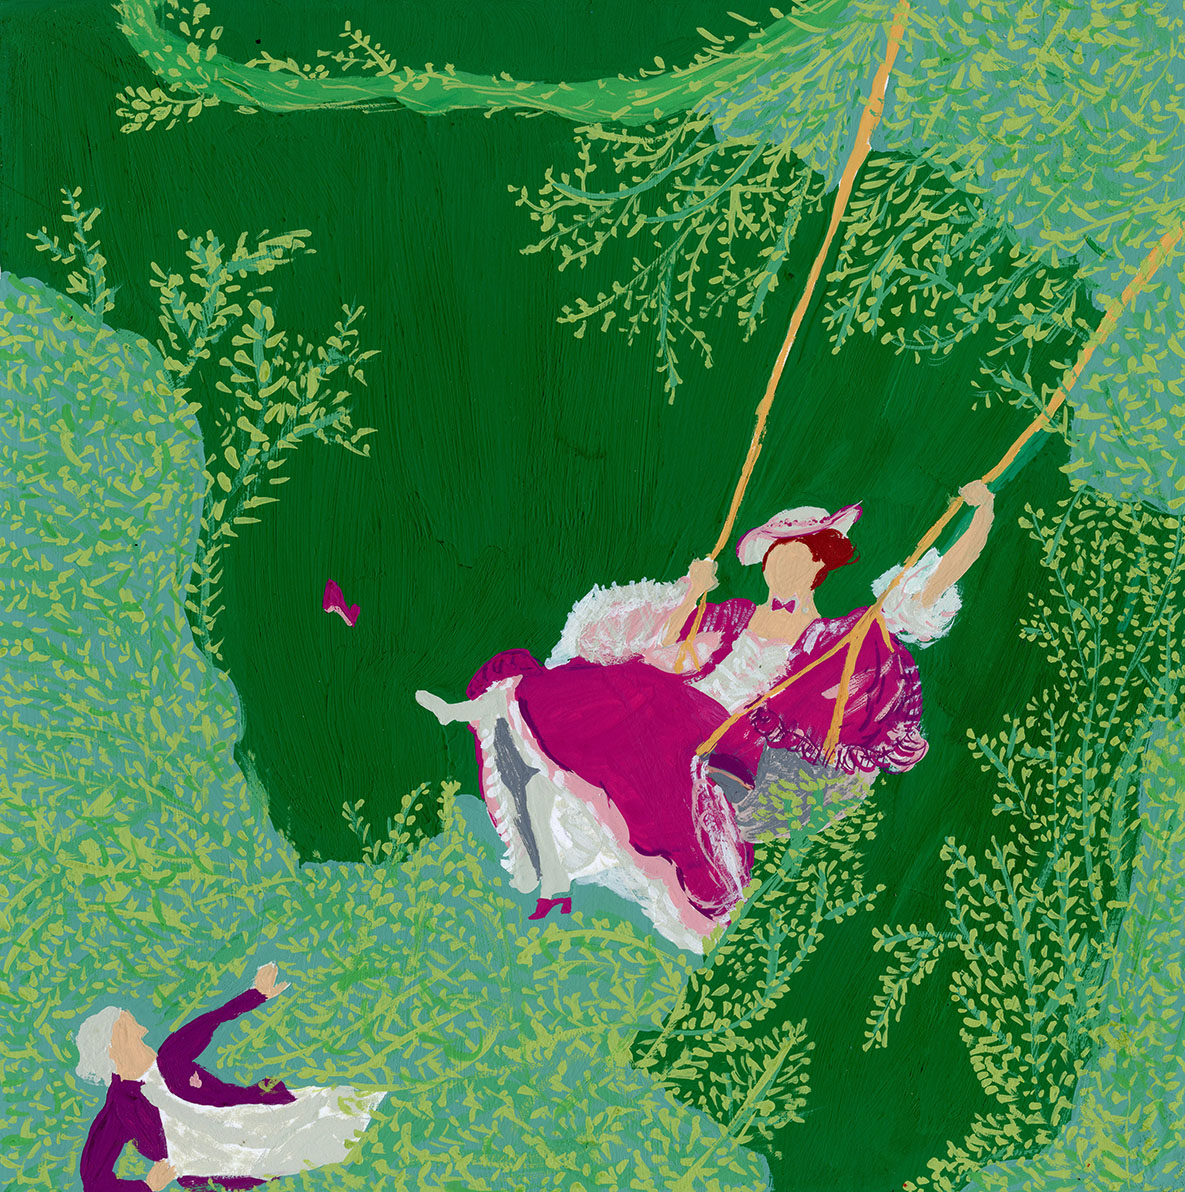 Fragonard Painting Woman on Swing Illustration 100 Day Project .jpg